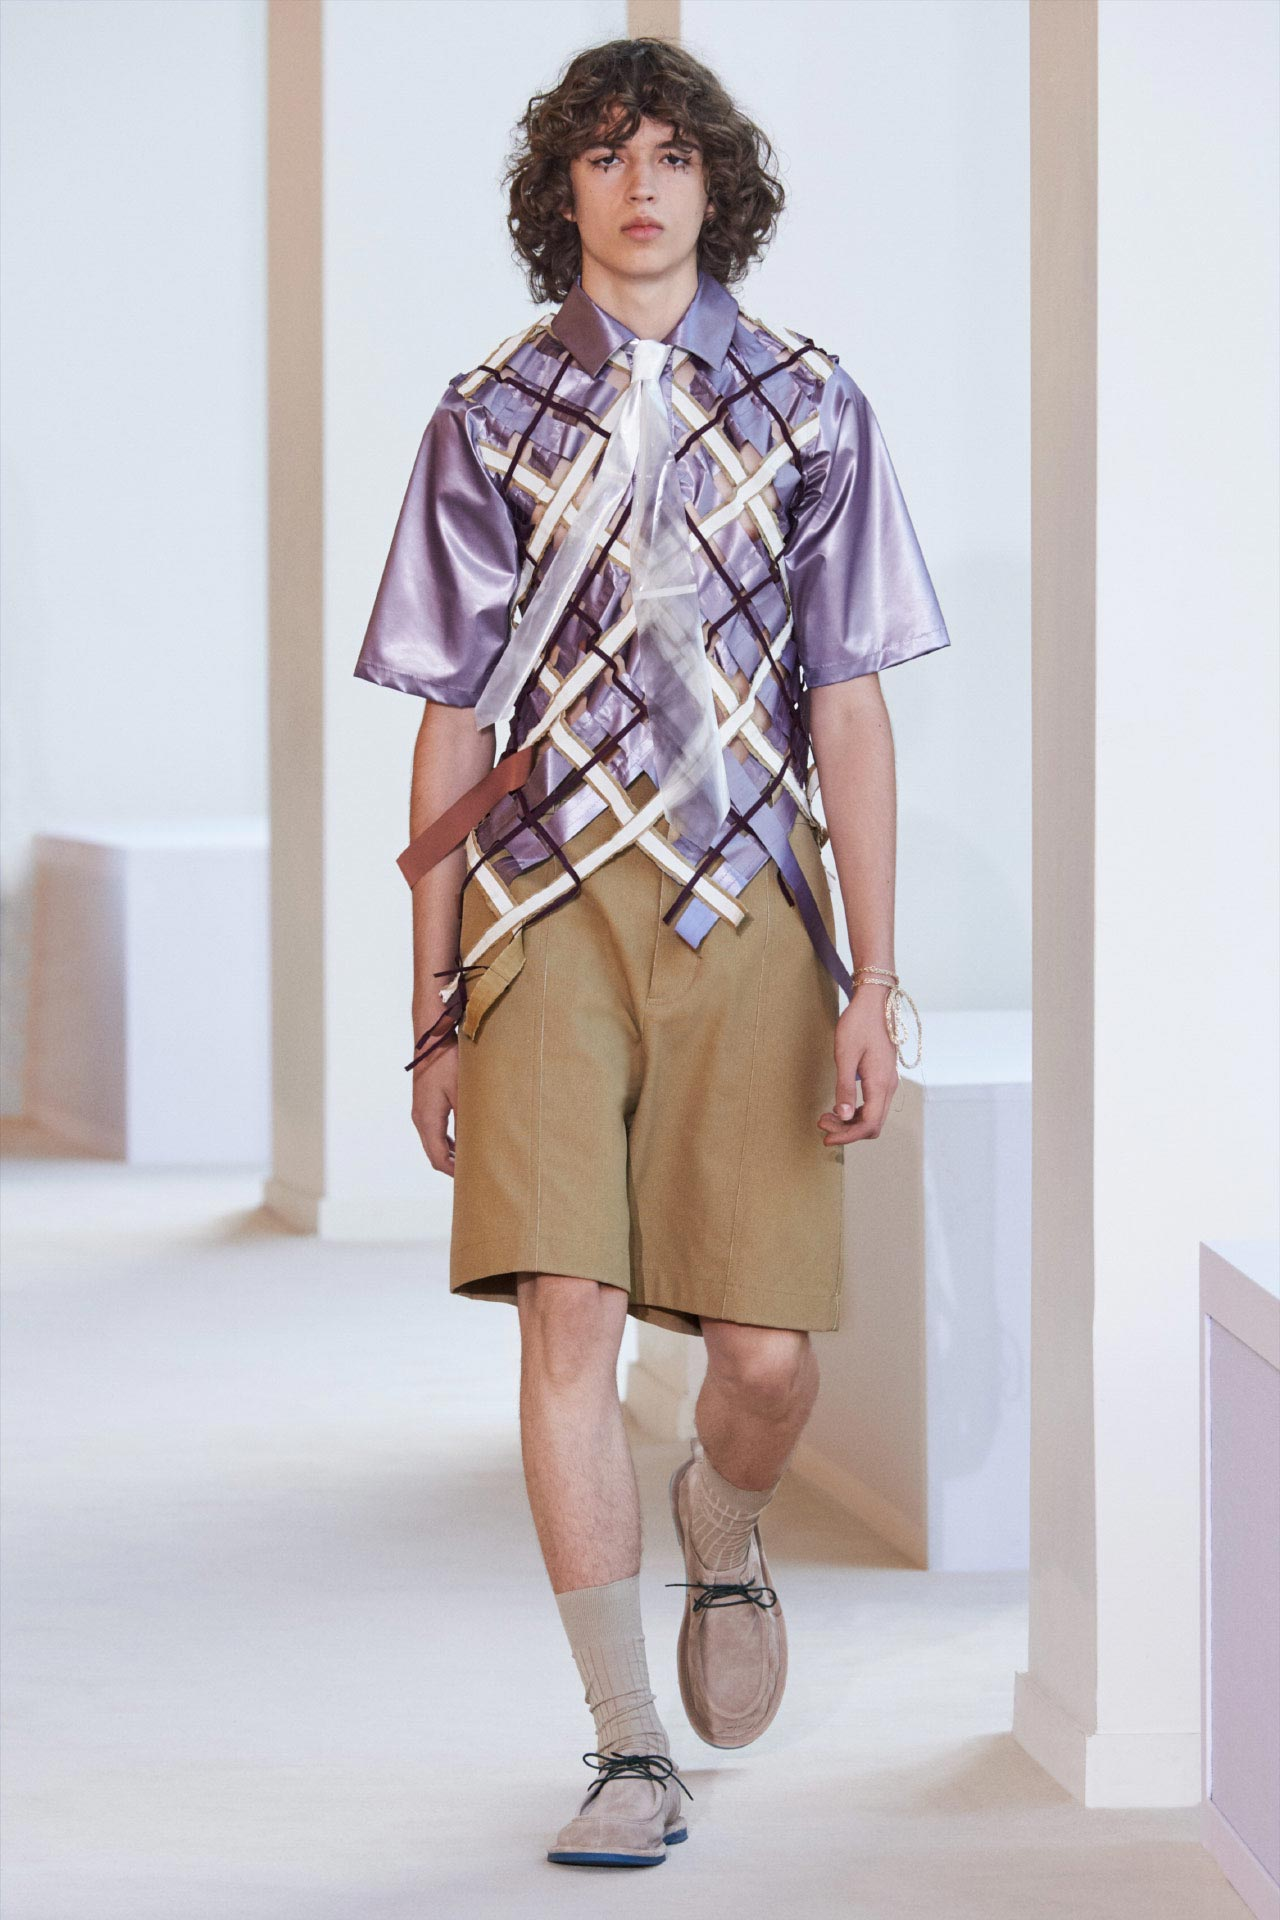 Look Spring/Summer, image 36